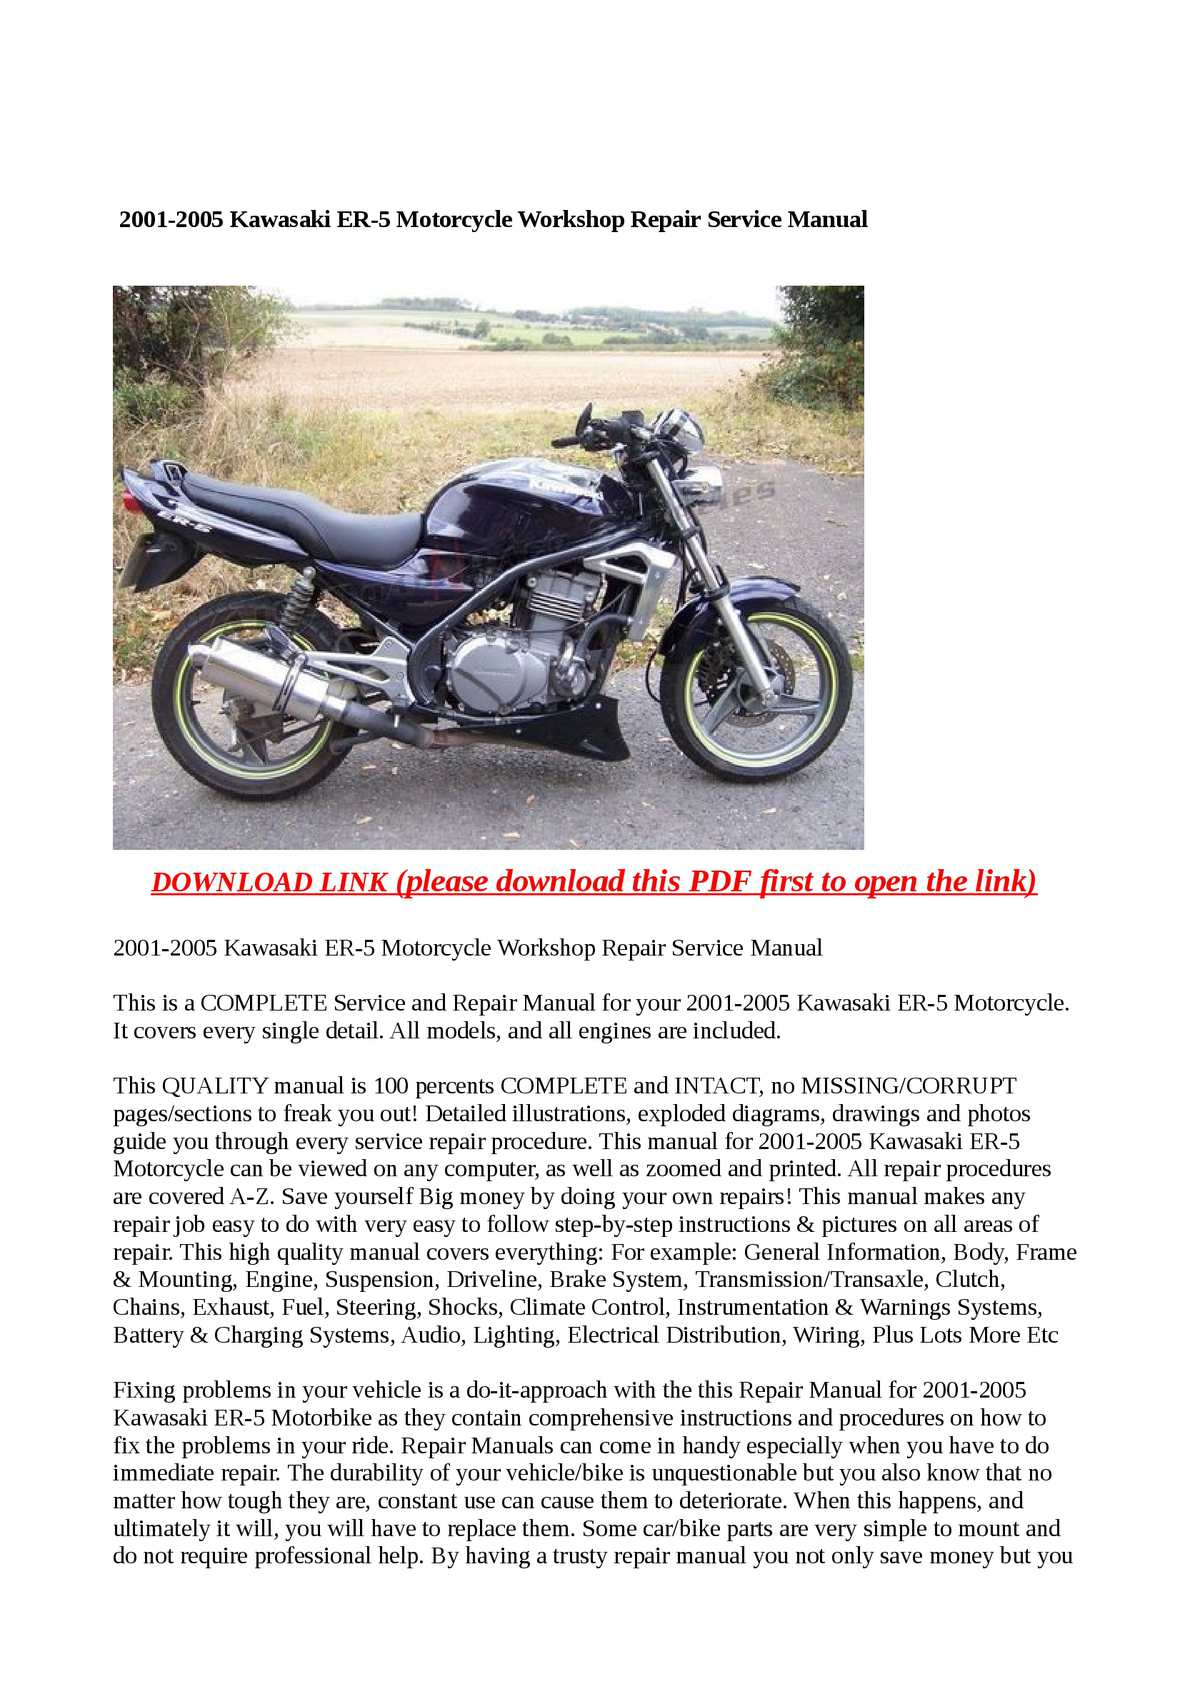 Calaméo - 2001-2005 Kawasaki ER-5 Motorcycle Workshop Repair Service Manual